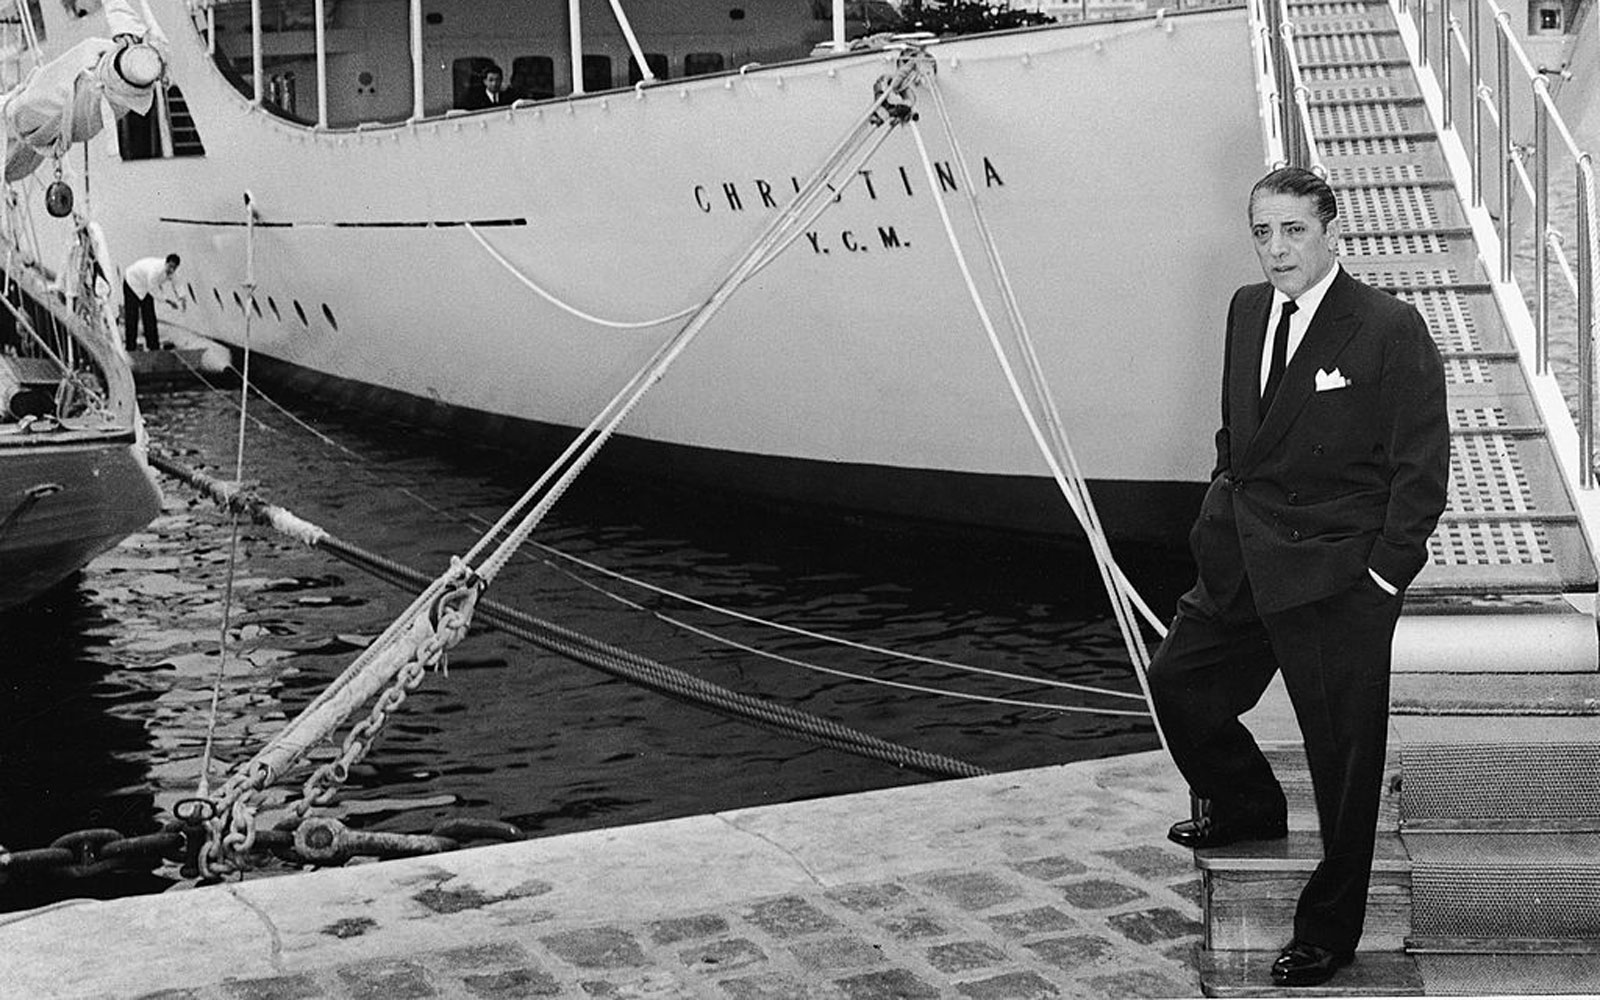 Aristotle Onassis in front of his private yacht in the mid-1950s.